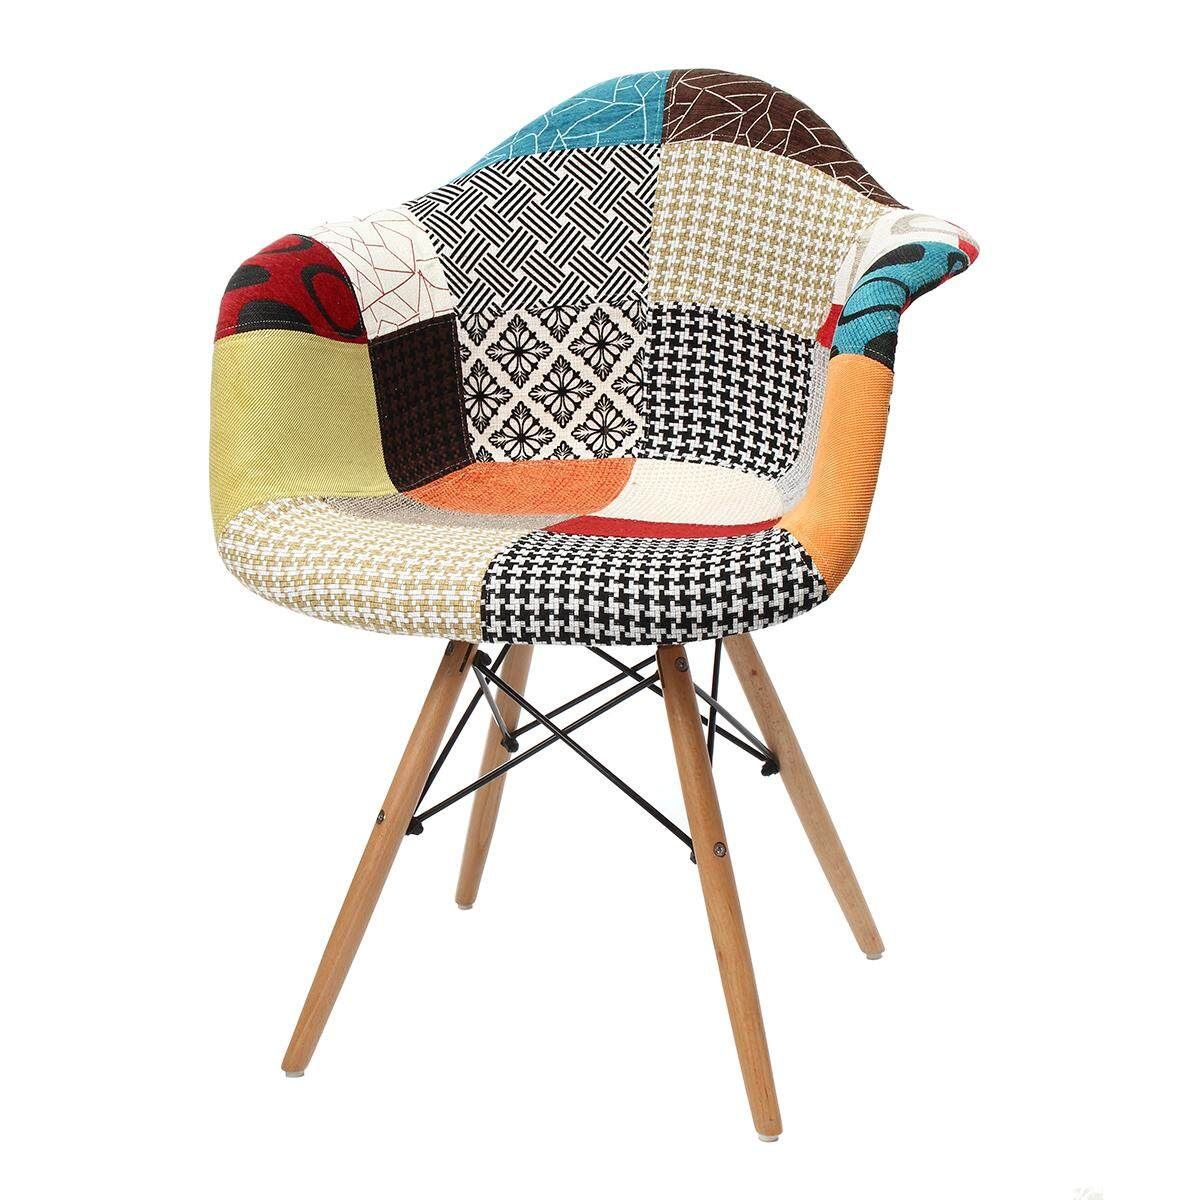 Patchwork Armchair for Dining Room Lounge - Fabric Reto Vintage - Eiffel Style